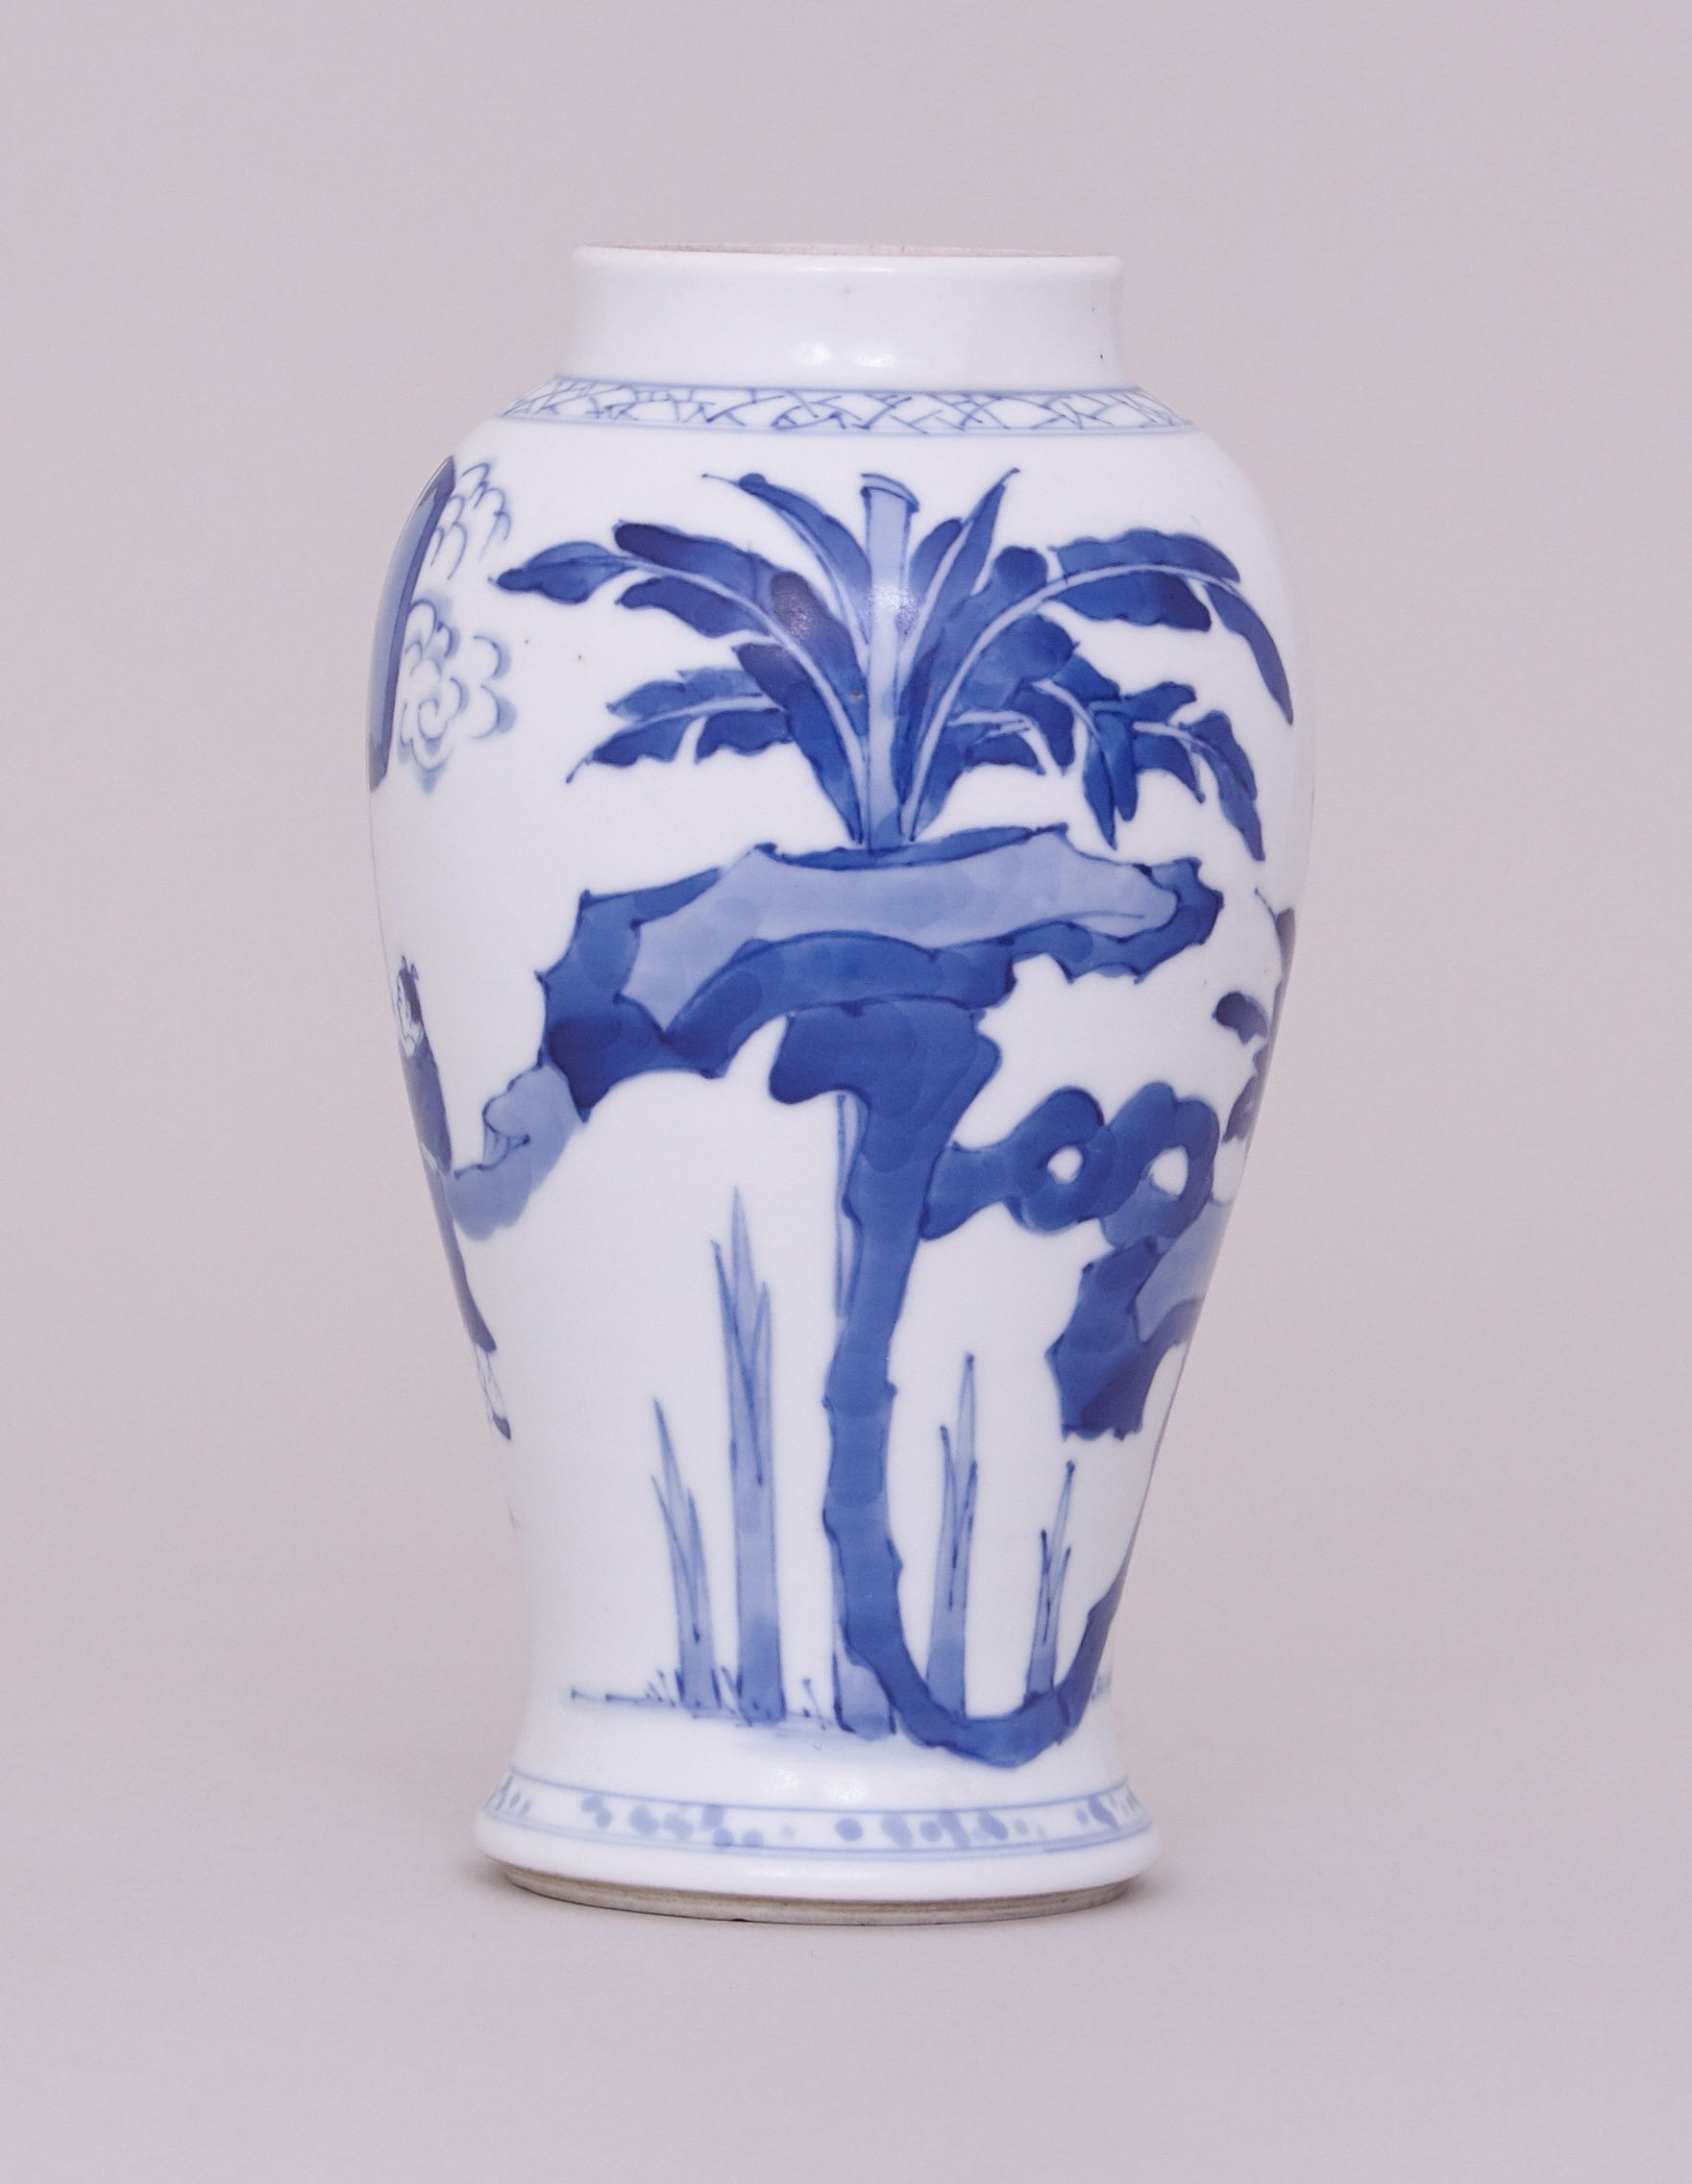 blue and white vases and urns of blue white vase lovely a chinese blue and white vase kangxi 1662 inside blue white vase lovely a chinese blue and white vase kangxi 1662 1722